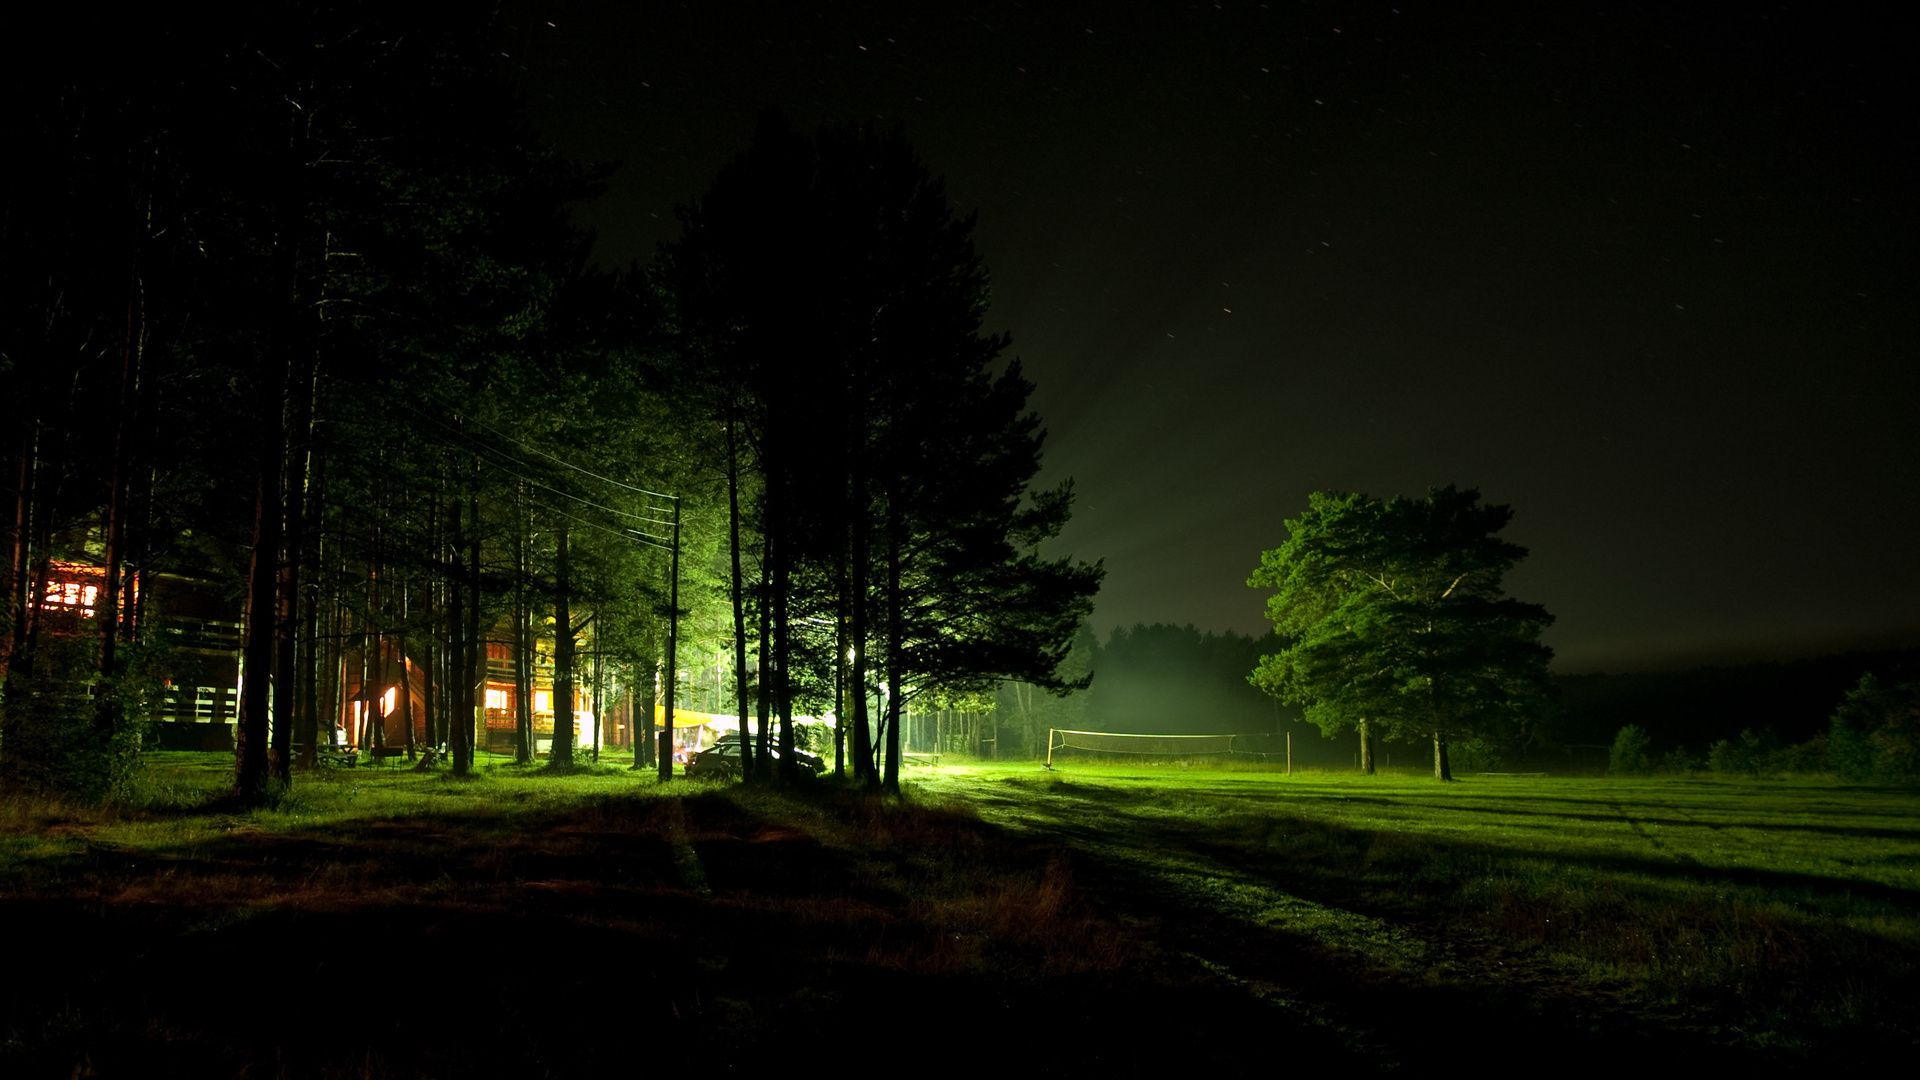 Night Forest Images